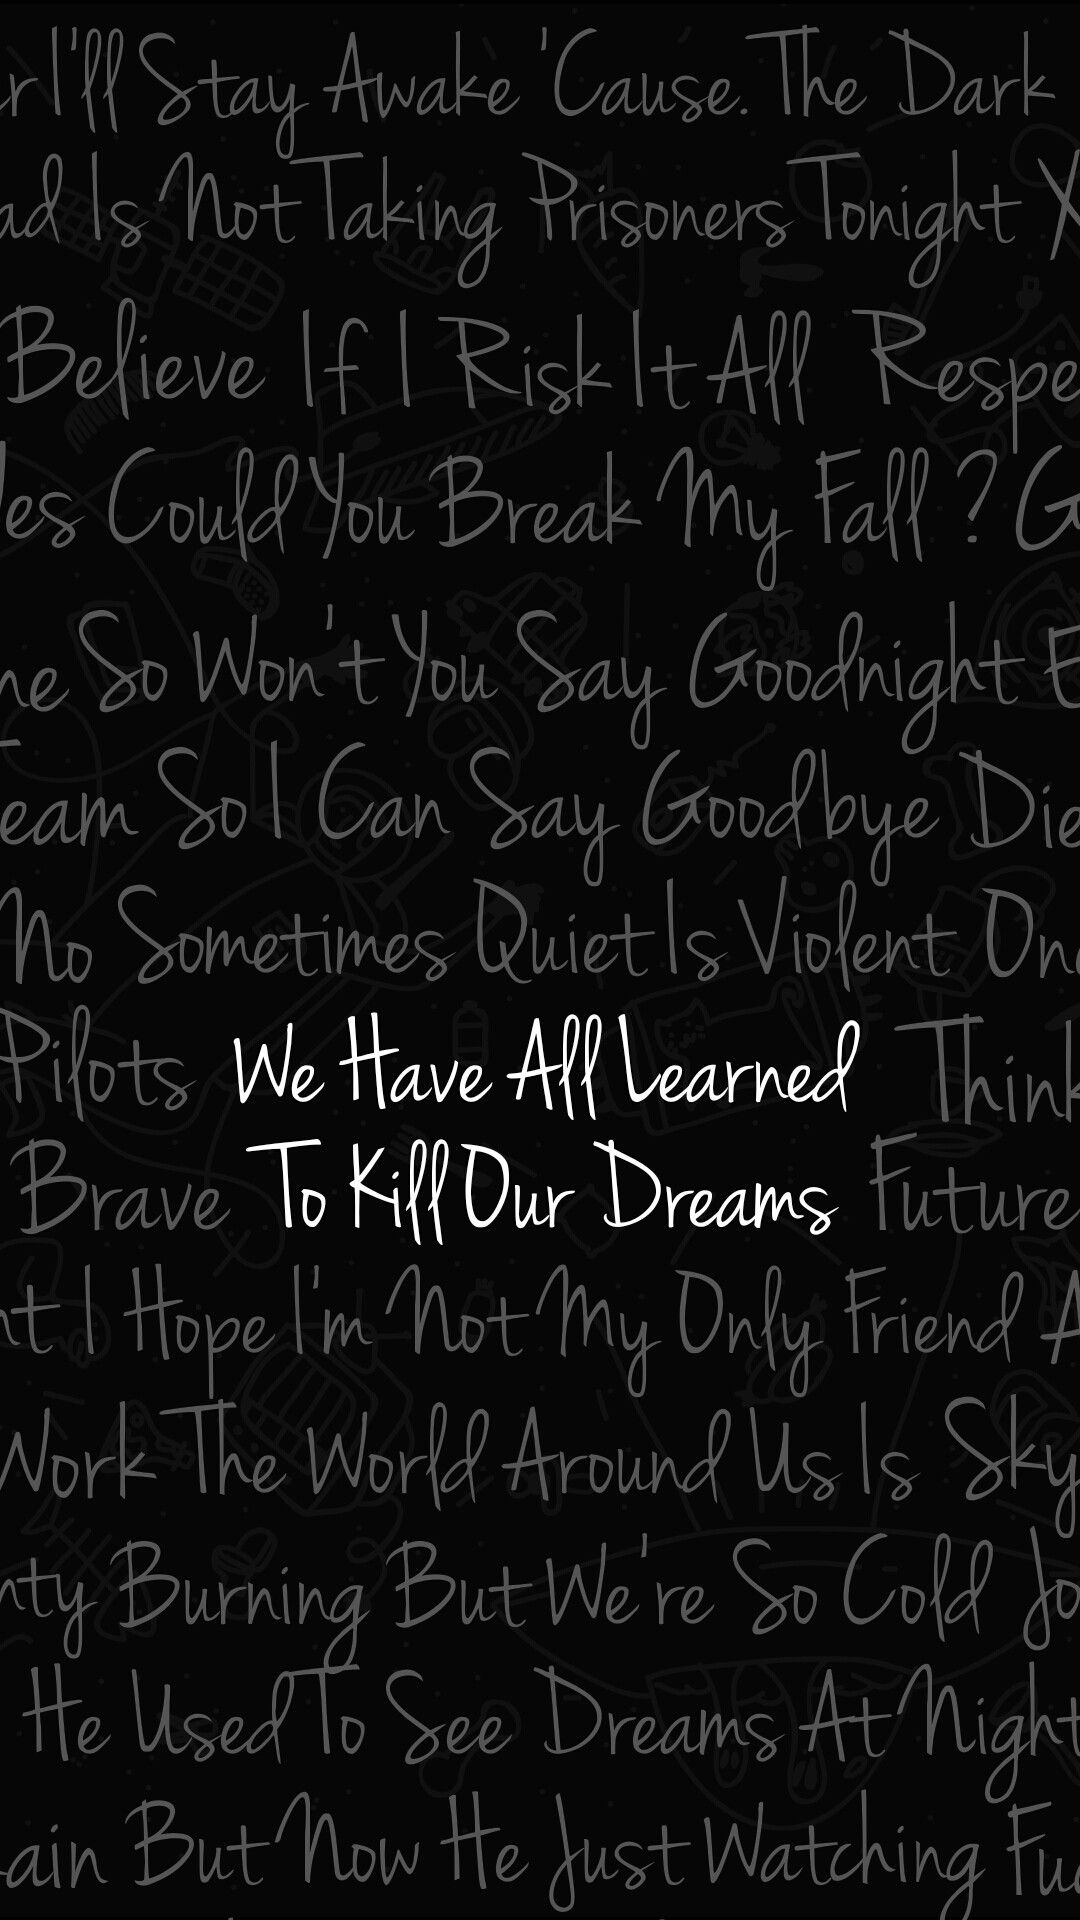 Kitchen Sink Twenty One Pilots Wallpaper twenty one pilots wallpaper of best lyrics tyler joseph josh dun